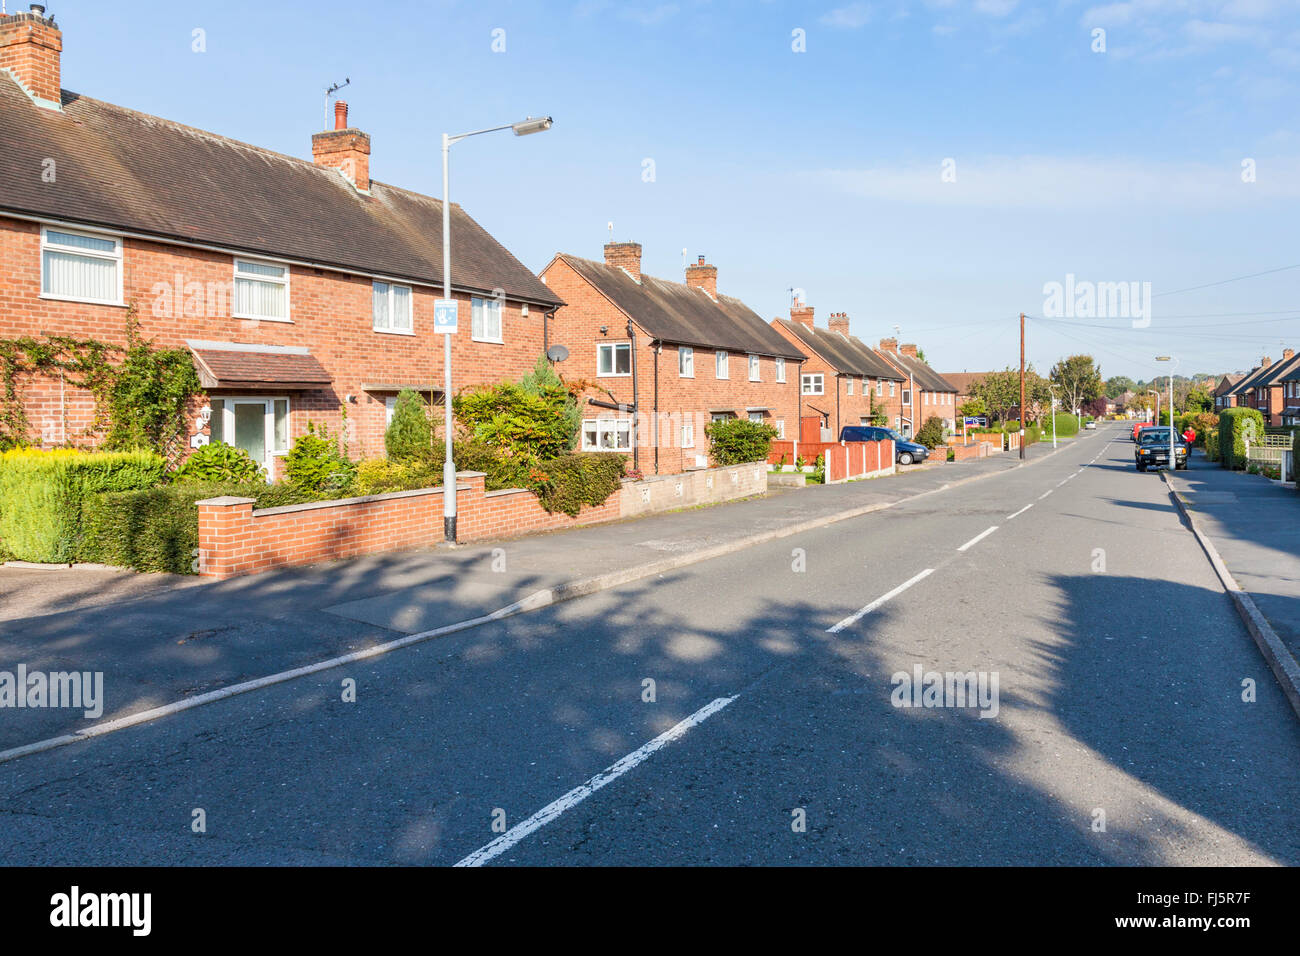 Housing on a typical 1950s Council estate in the village of Ruddington, Nottinghamshire, England, UK Stock Photo